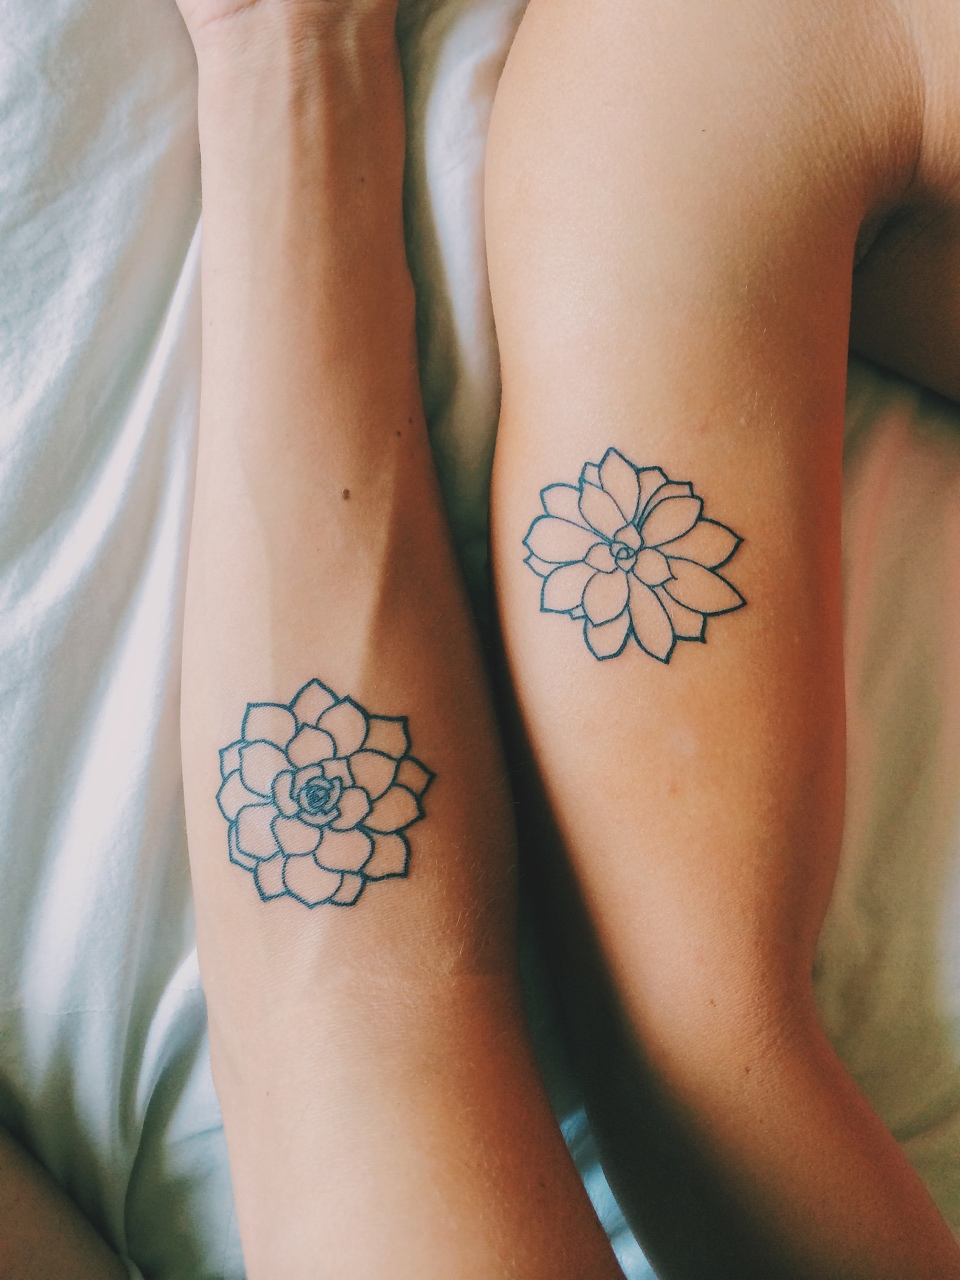 Matching Flowers Tattoos